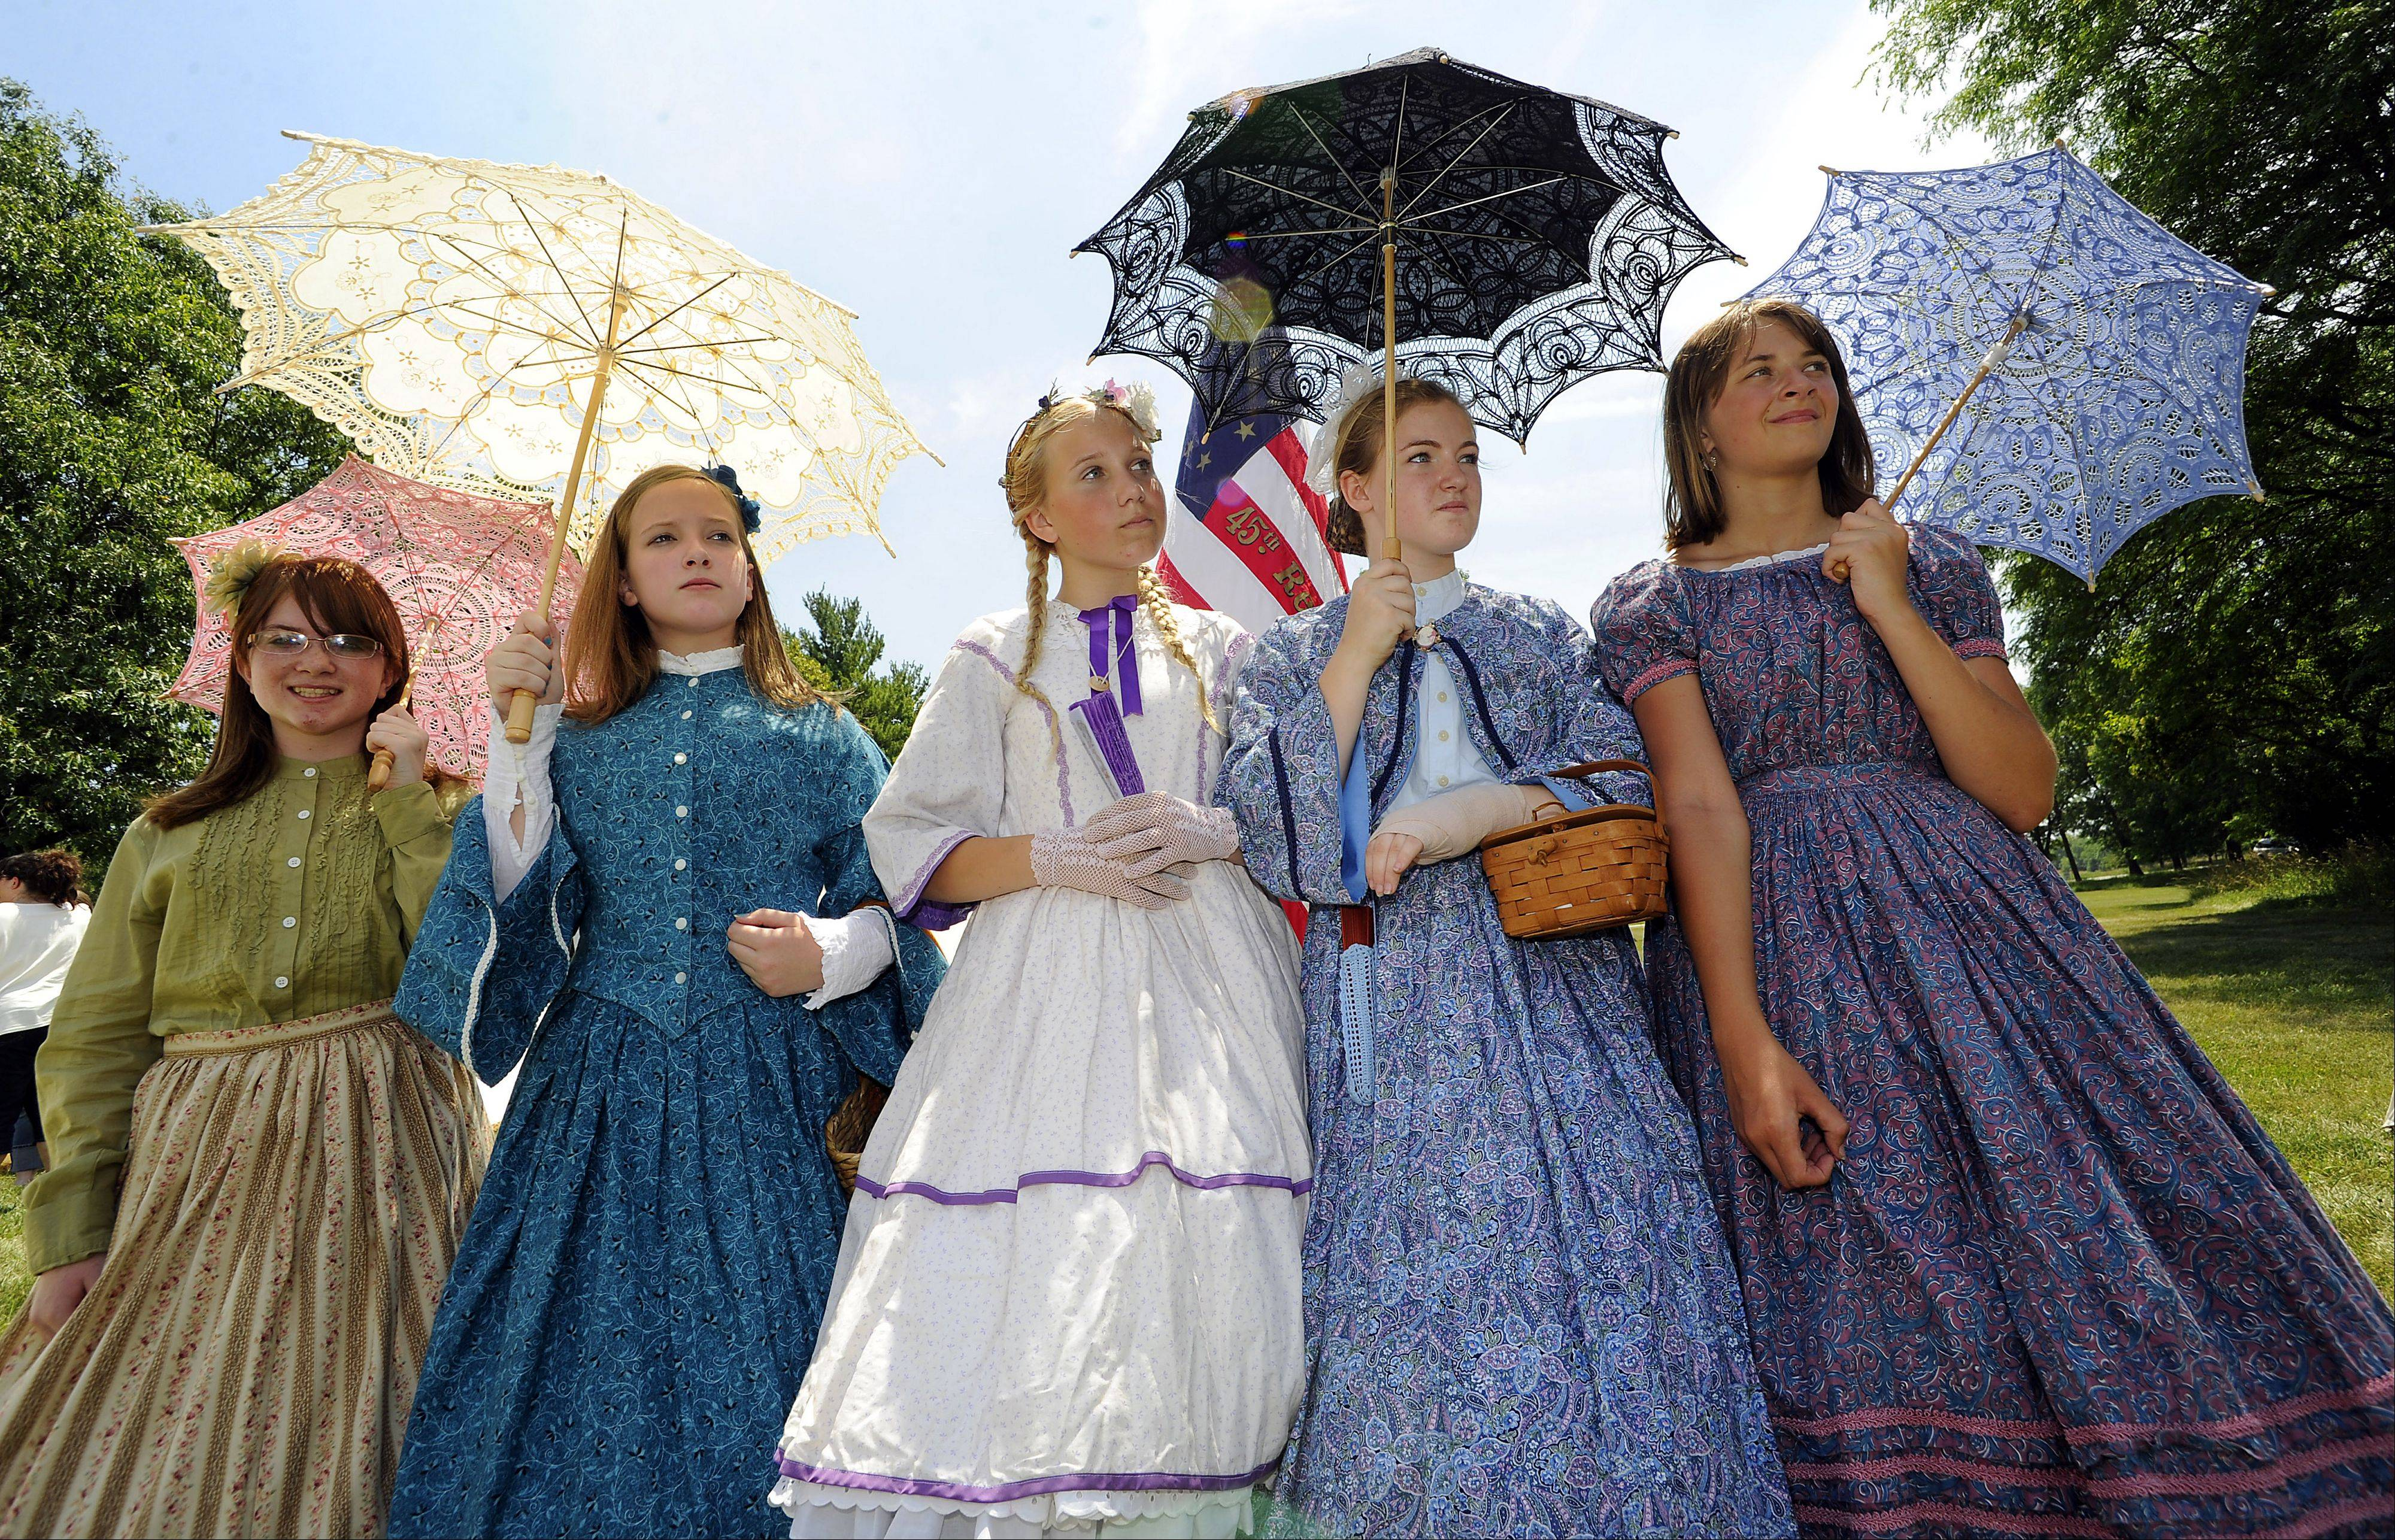 Civil War girls, Lauren,12, and Makena Haines,13, with TaylorAnne Stefanski,13, Libbie Barden,13, and Destiny Gorman,14, dressed in their hoop dresses watch over the events of the day at the 20th annual Civil War days at the Lake County Forest Preserve on Saturday.